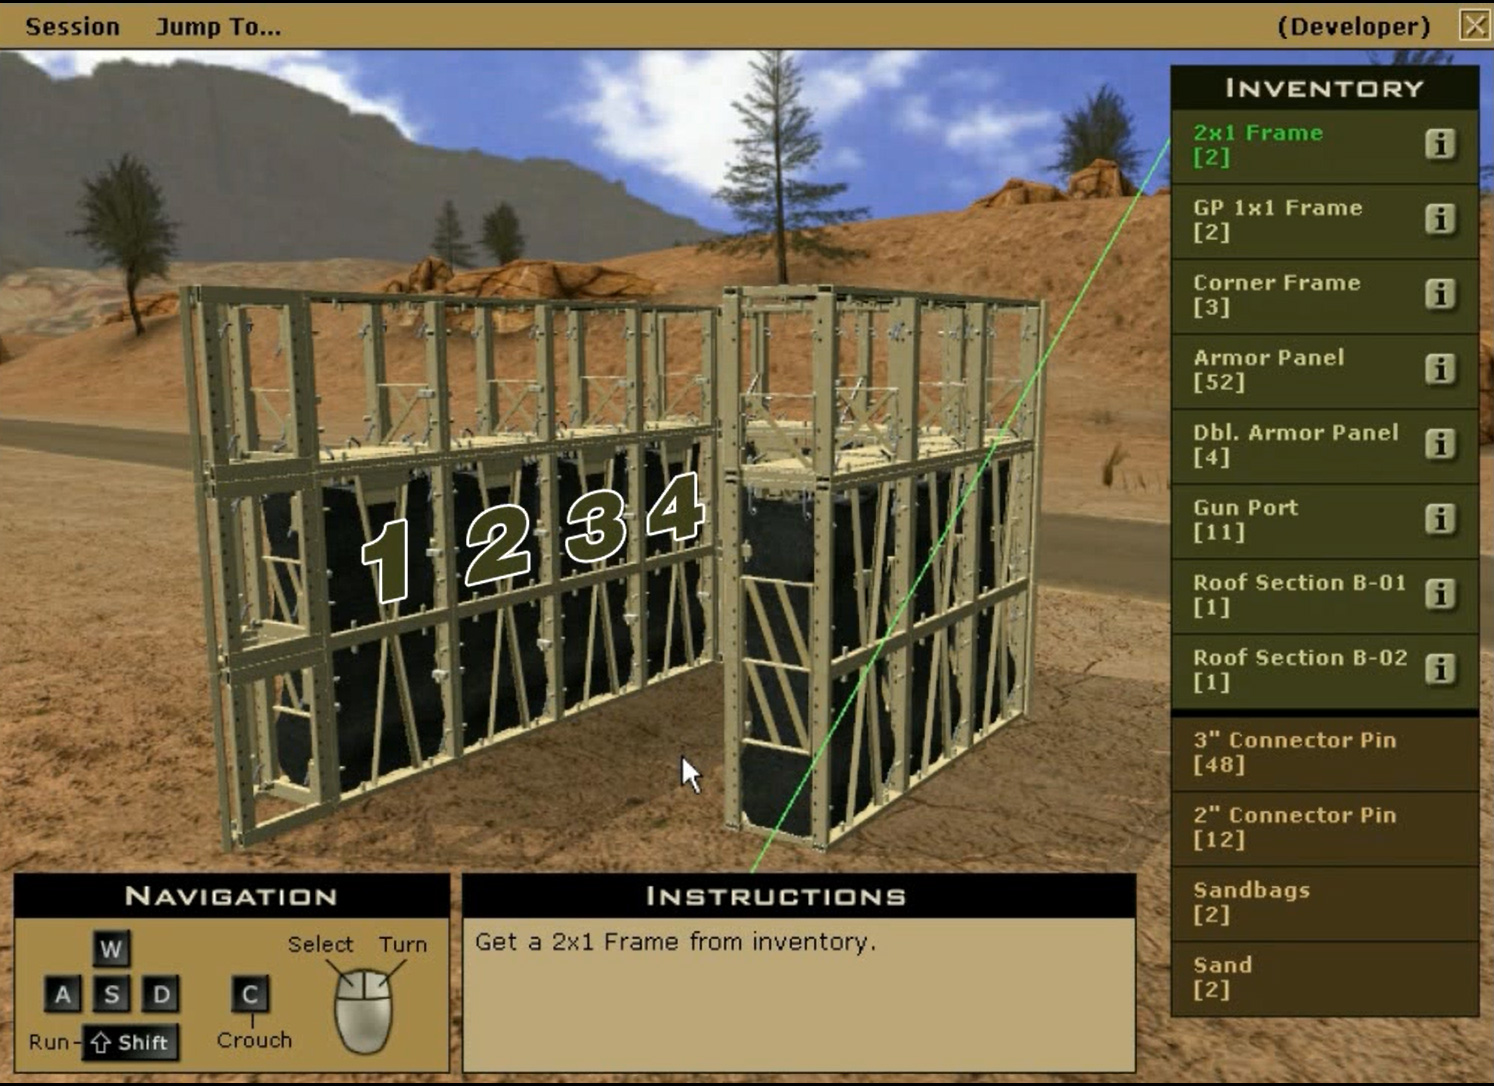 McCurdys Armor virtual assembly instruction software.